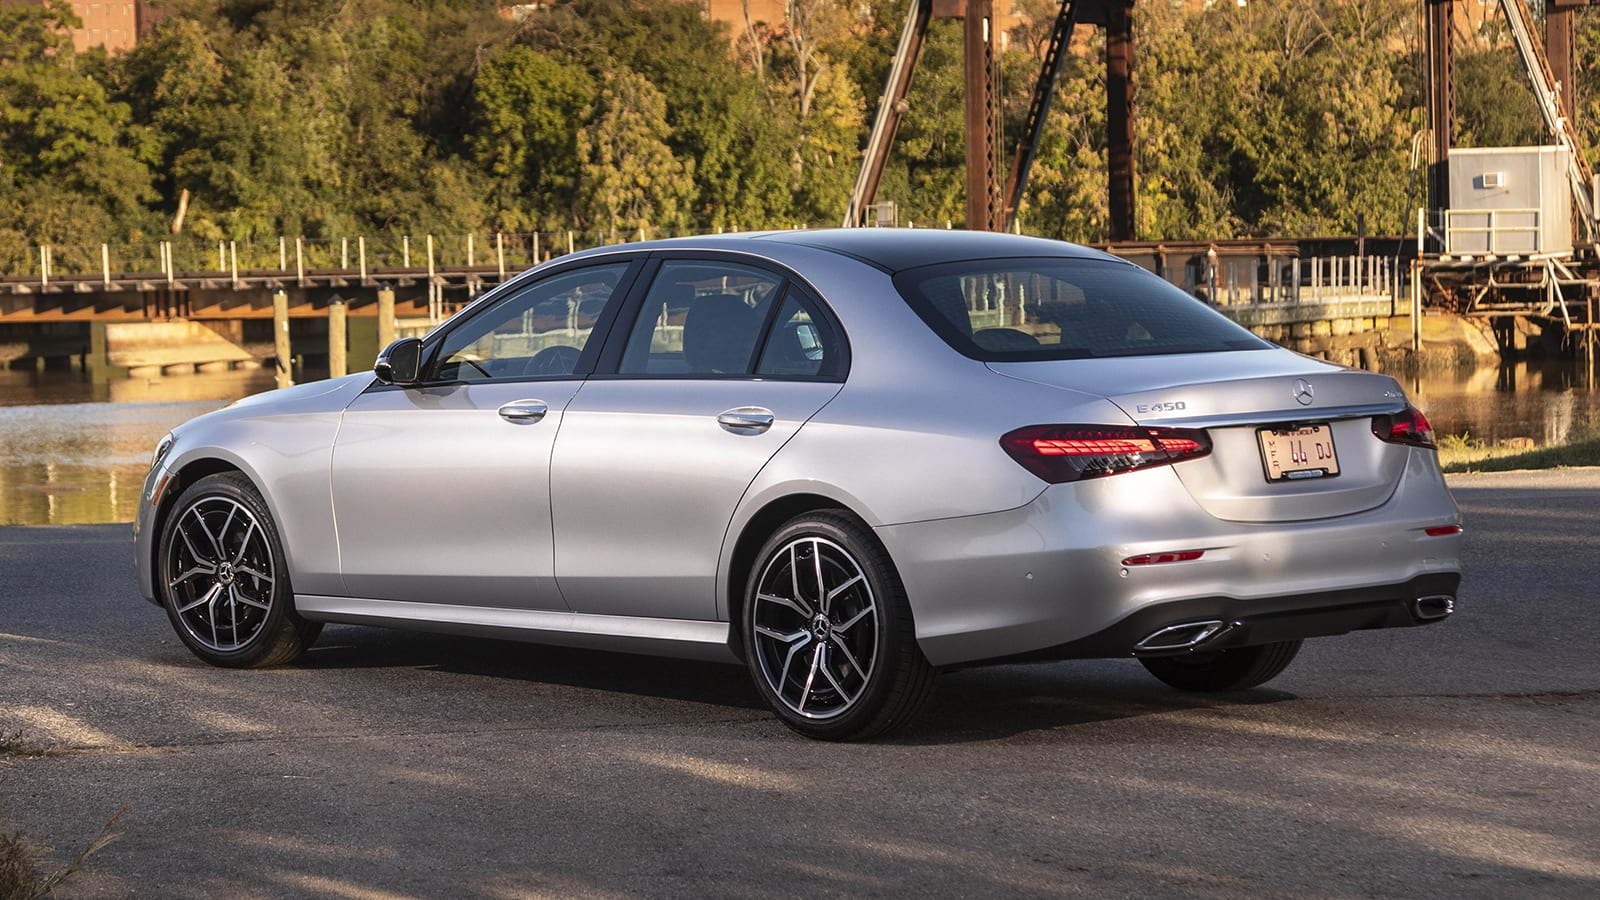 2021 Mercedes Benz E 450 First Drive What S New For The Updated E Class Sedan Autonoid